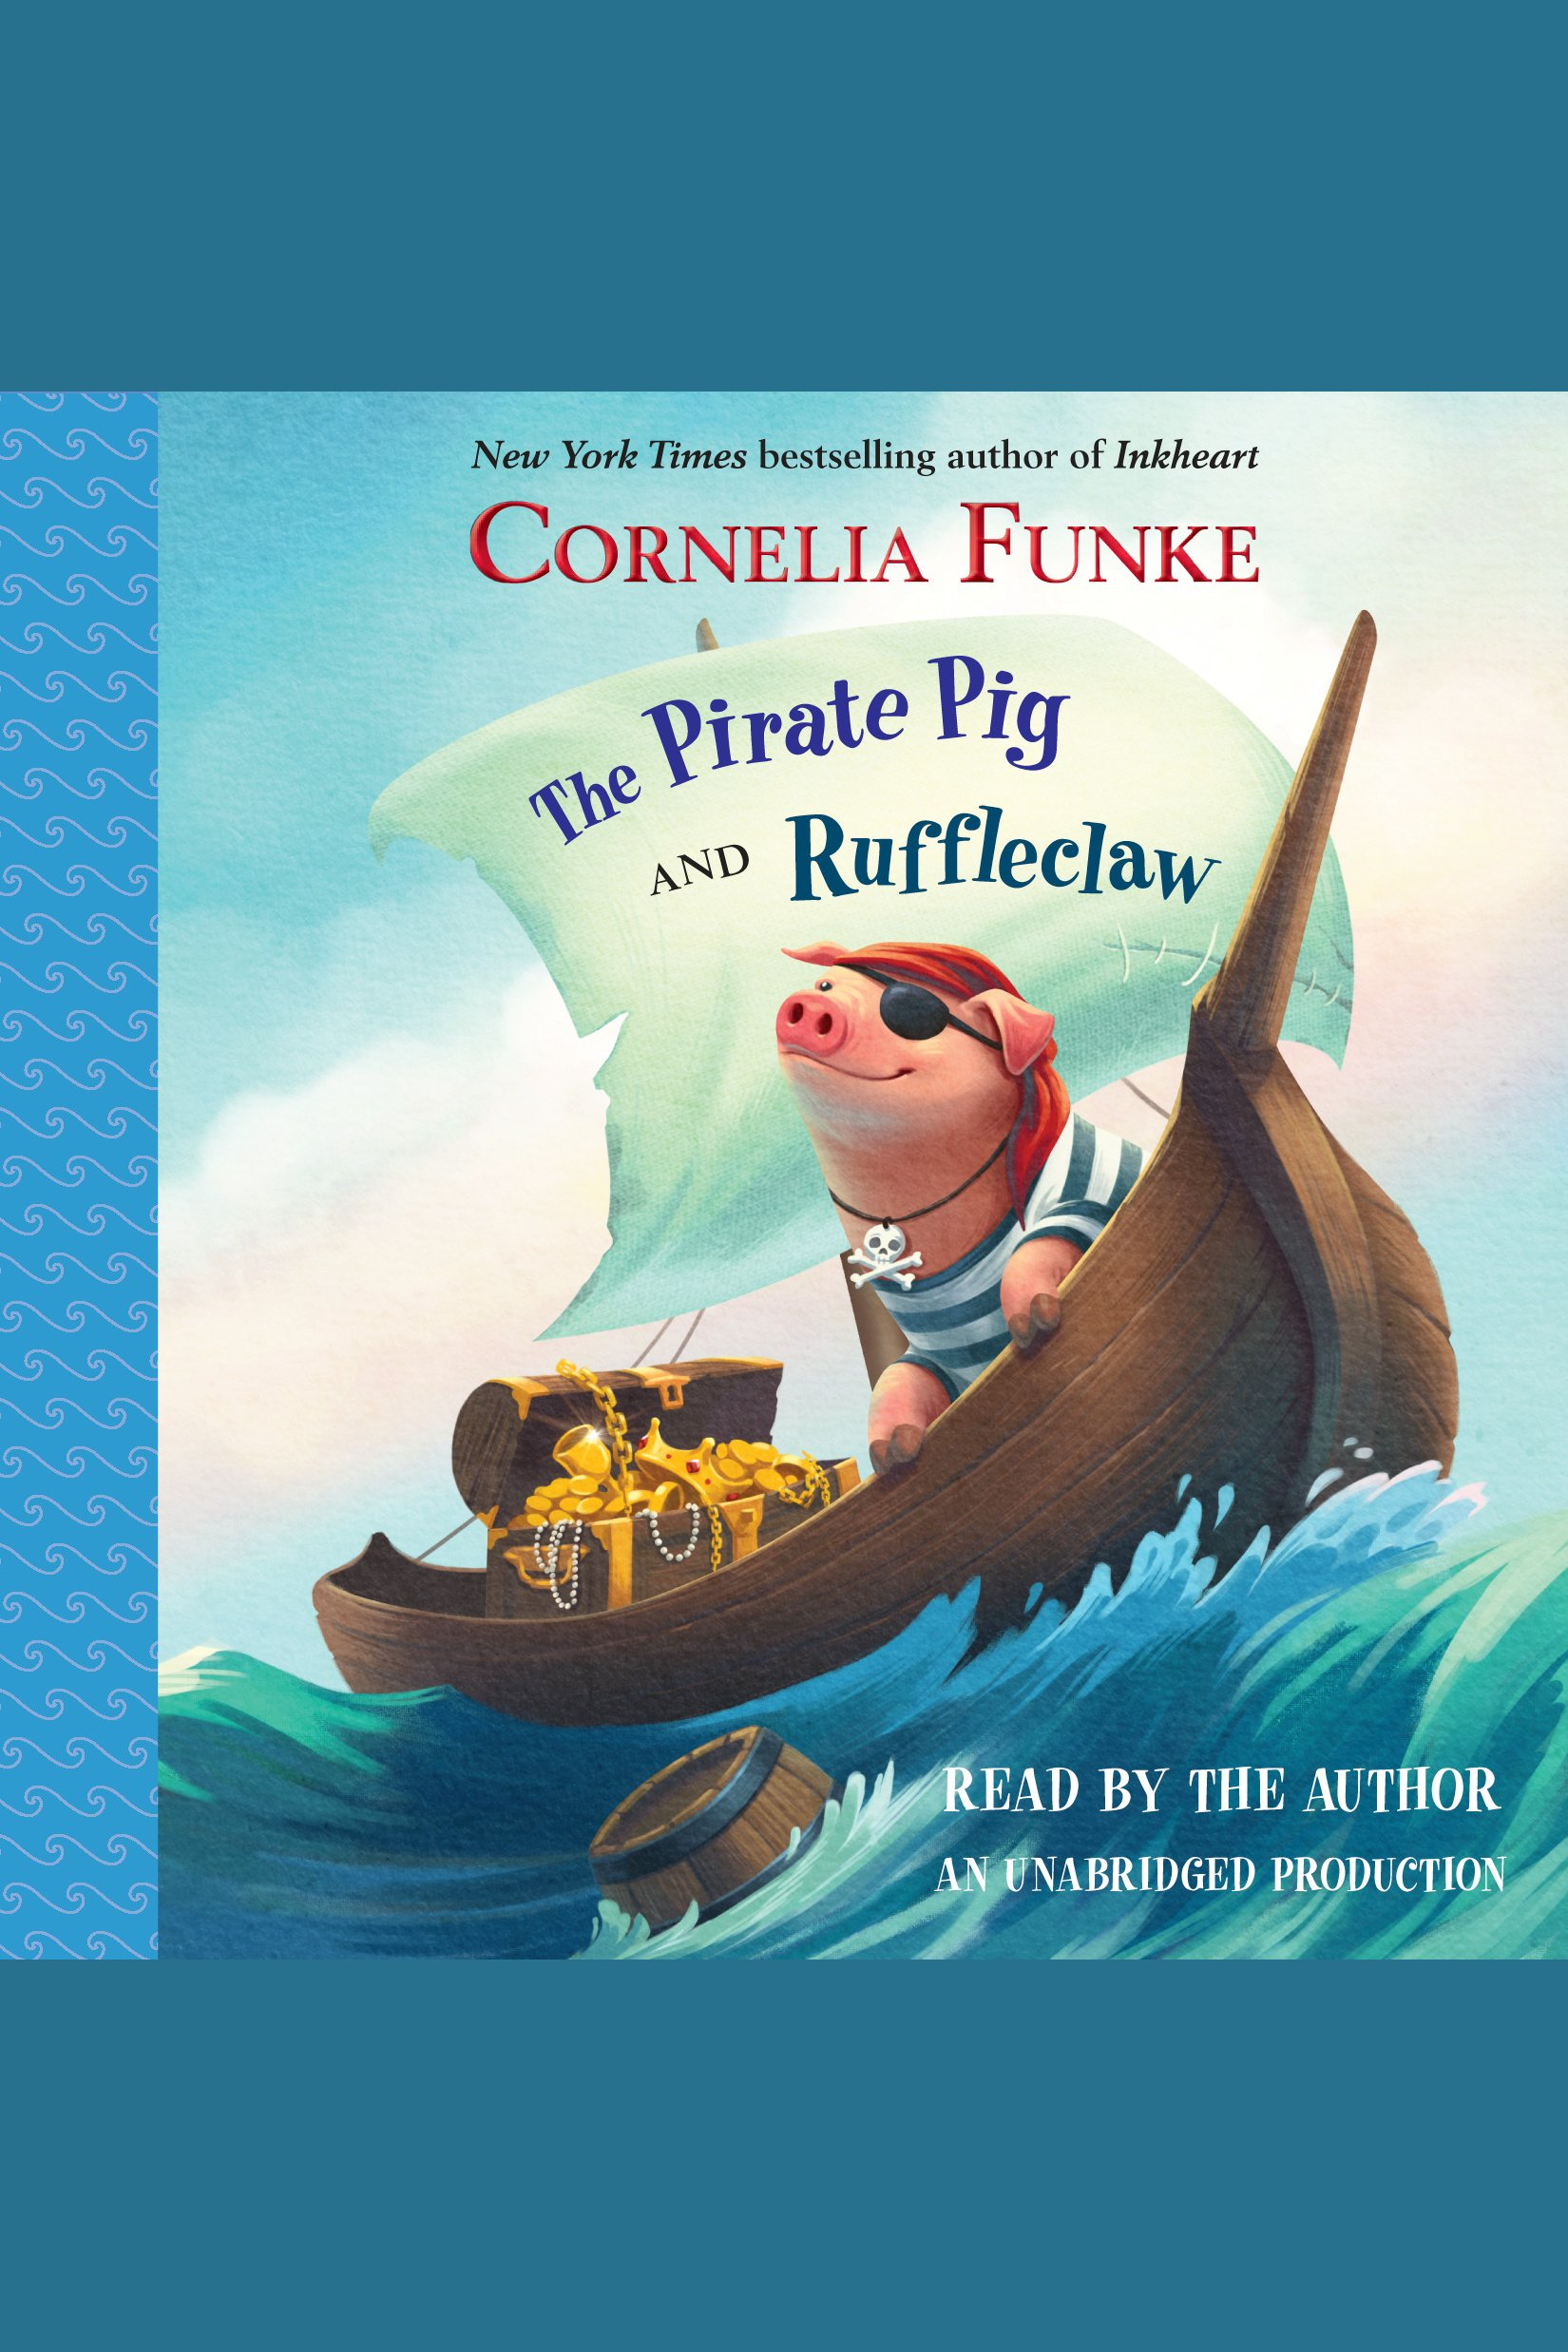 The pirate pig and ruffleclaw cover image